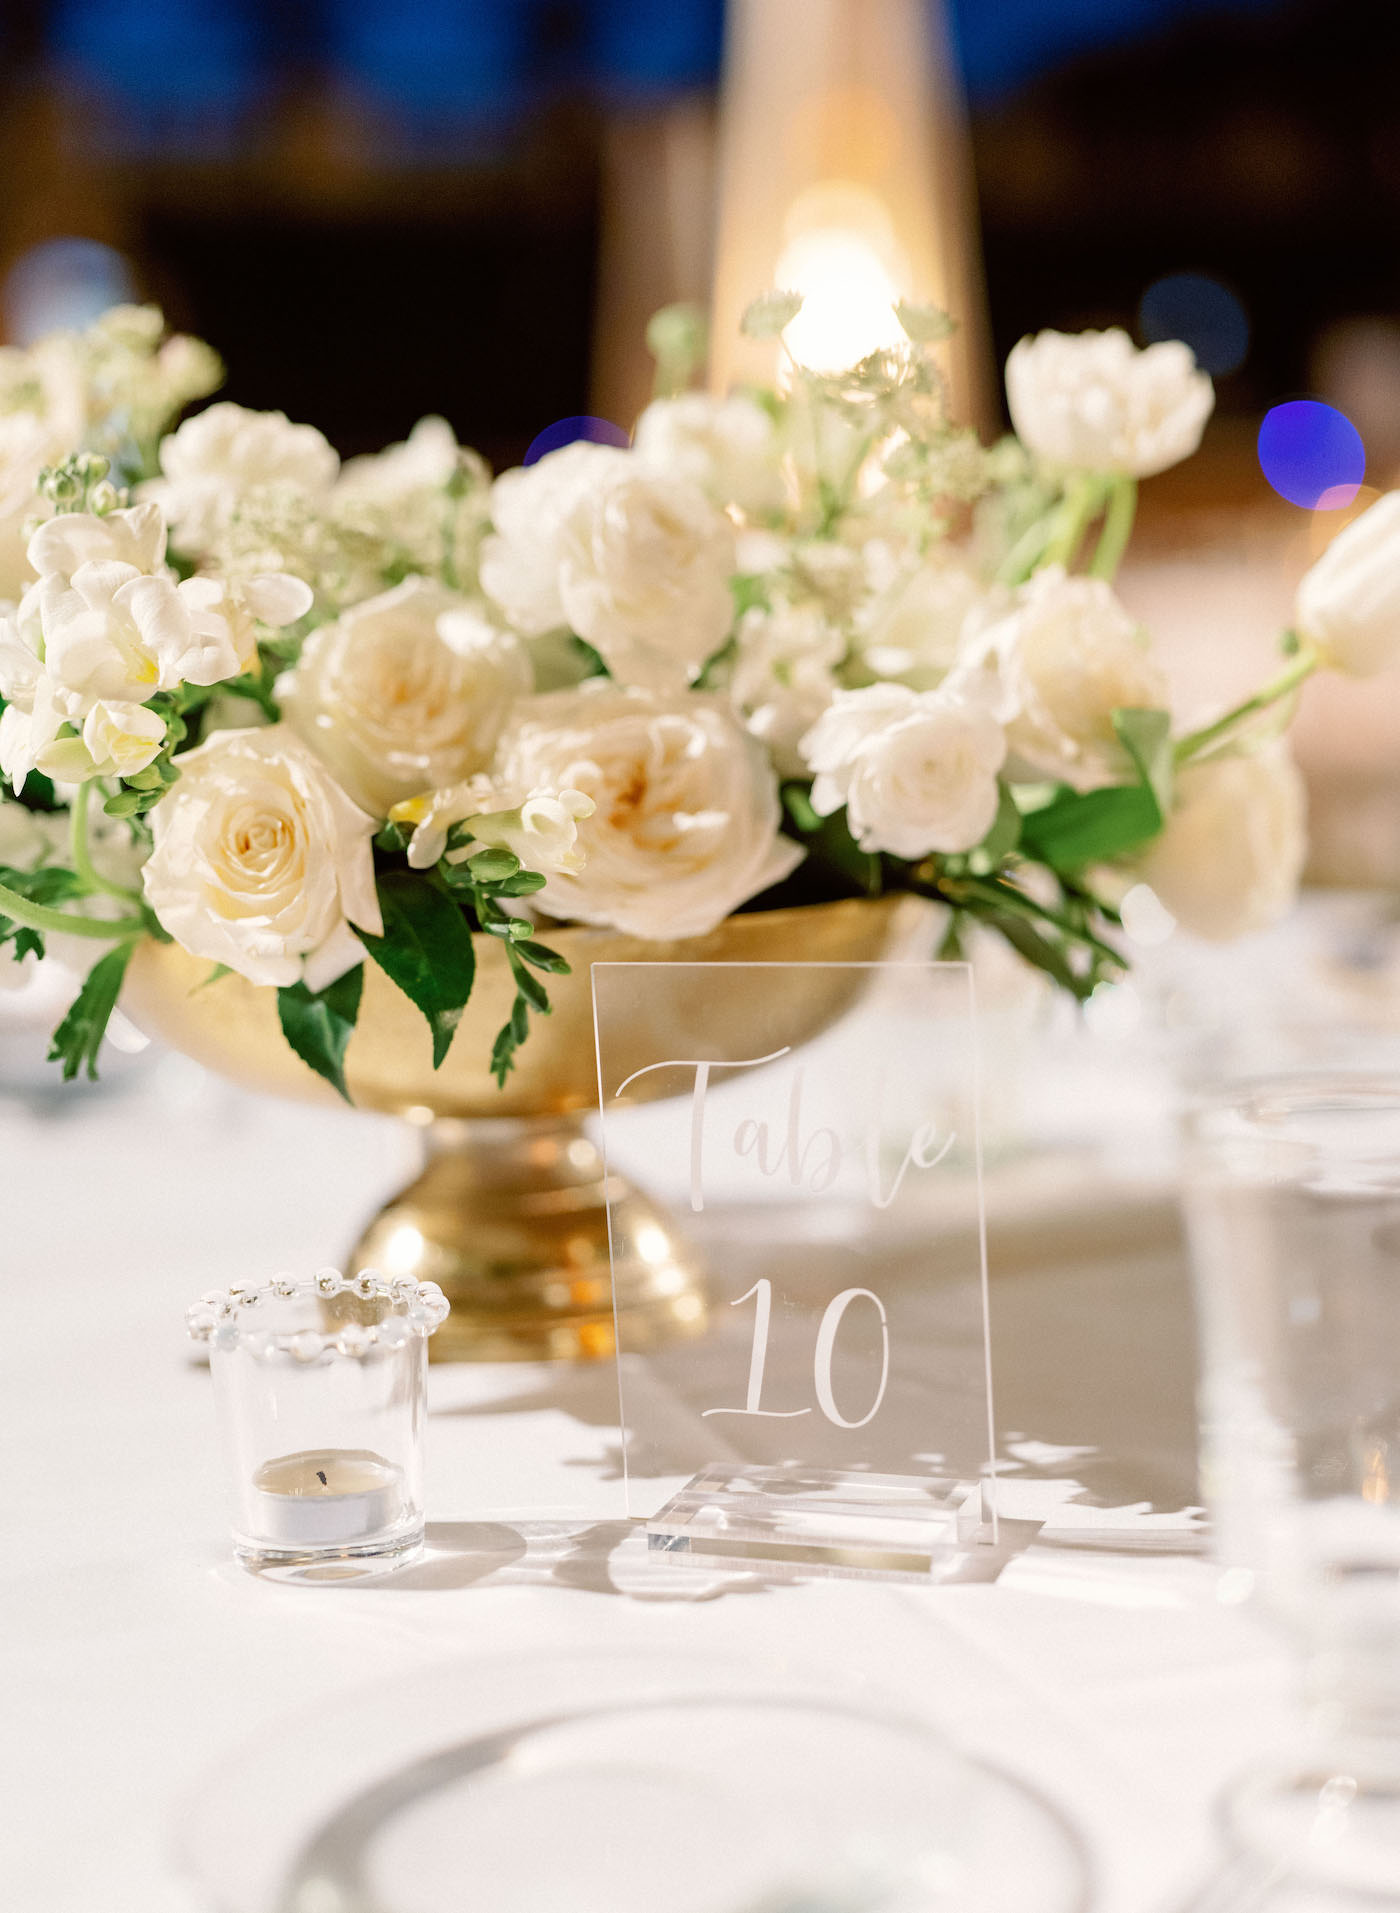 Romantic, Modern Wedding Reception Decor, Low Floral Centerpiece with Gold Vase, Ivory Roses, White Florals and Greenery, Clear Acrylic Table Number | Luxury Florida Wedding Planner NK Weddings